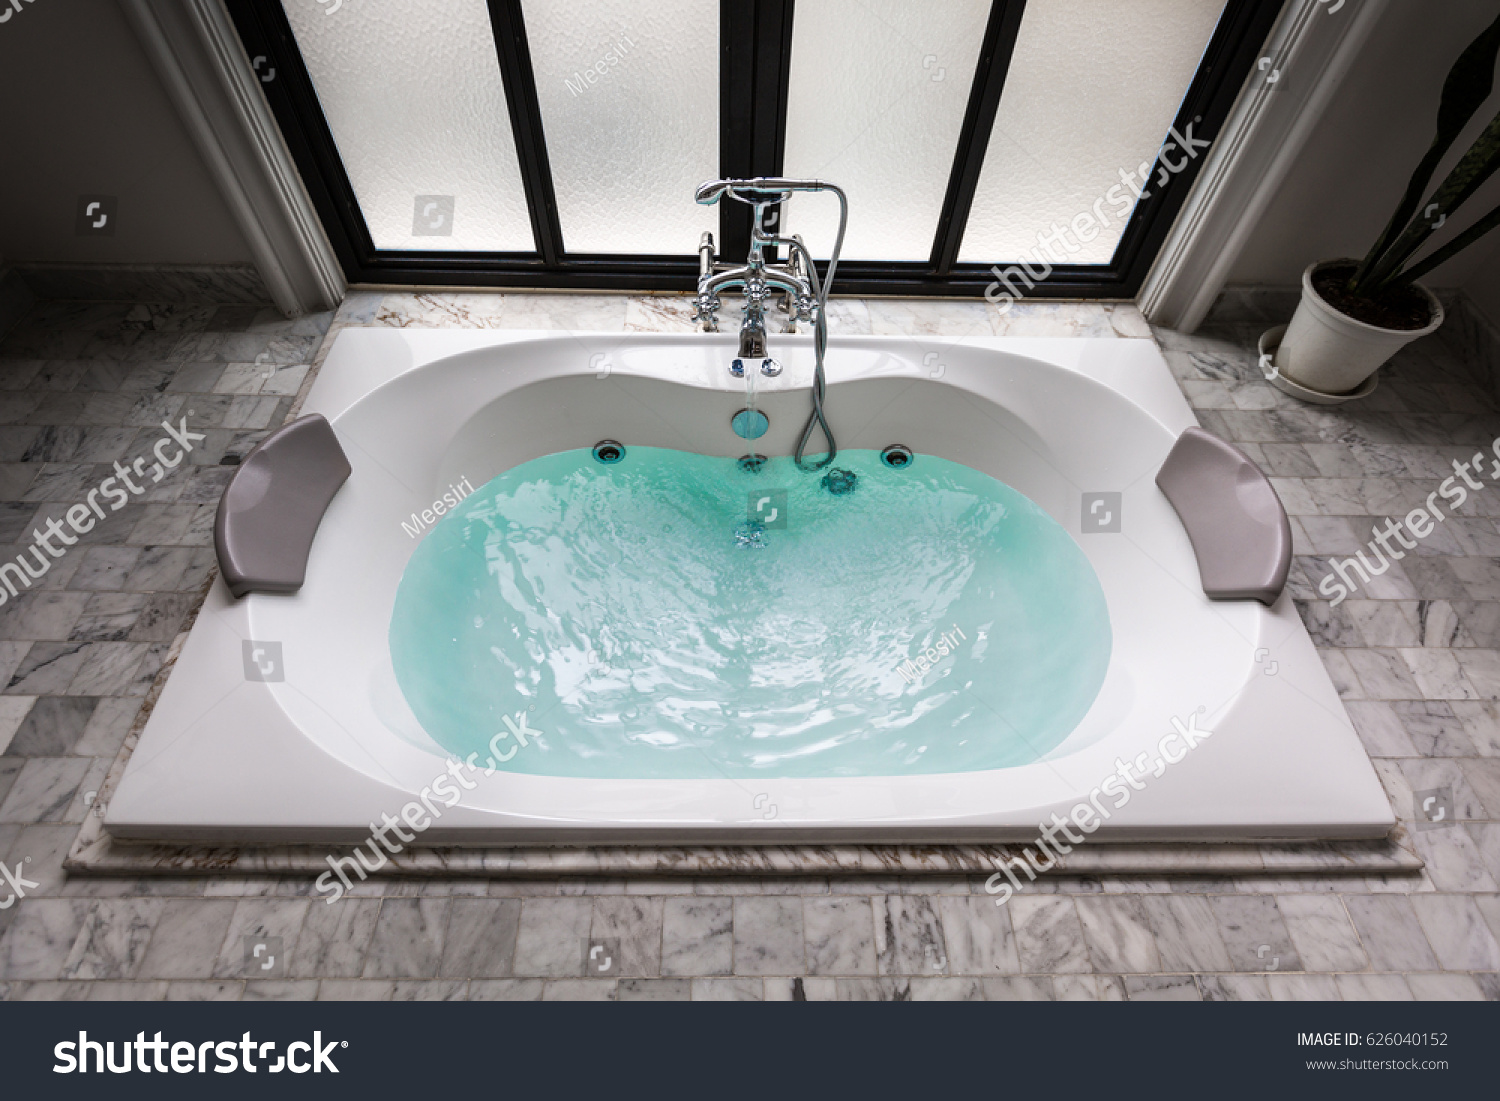 Jacuzzi Bath Tub On Marble Floor Stock Photo (Edit Now) 626040152 ...